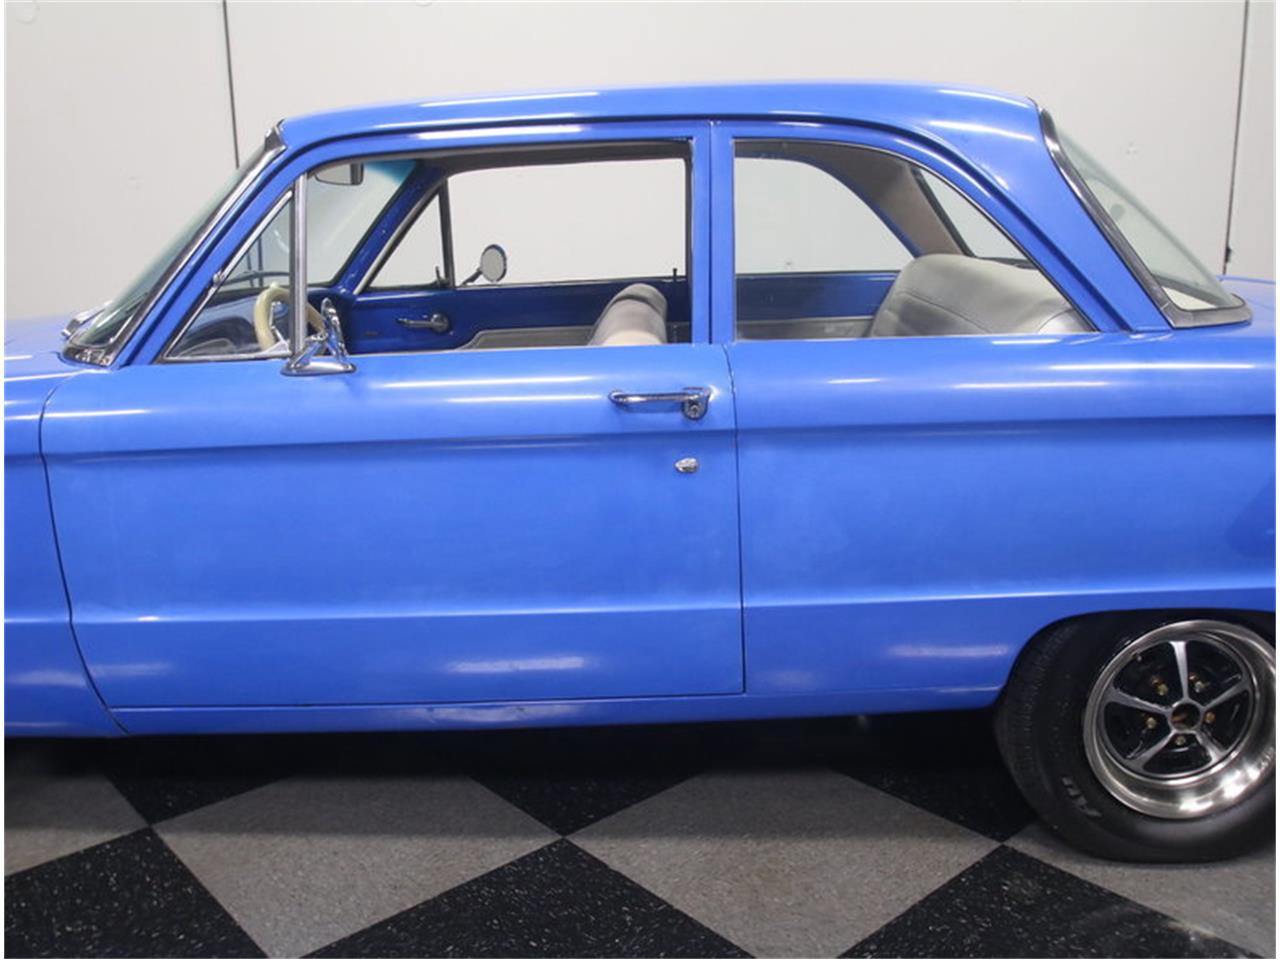 Large Picture of Classic '62 Ford Falcon - $14,995.00 Offered by Streetside Classics - Atlanta - MH3Z